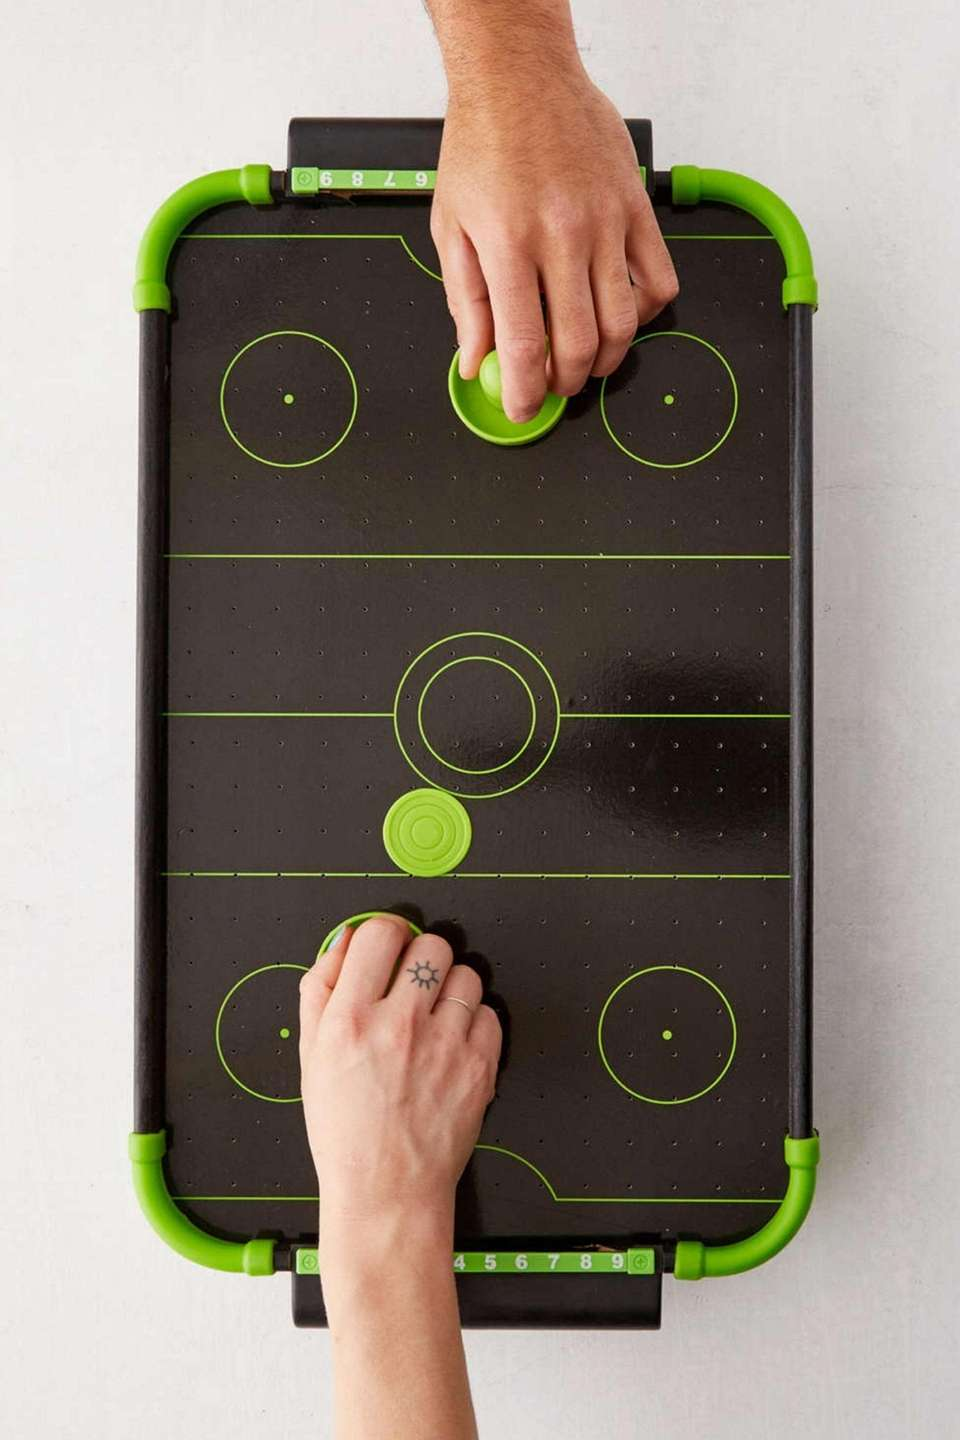 Play all your favorite games, from air hockey